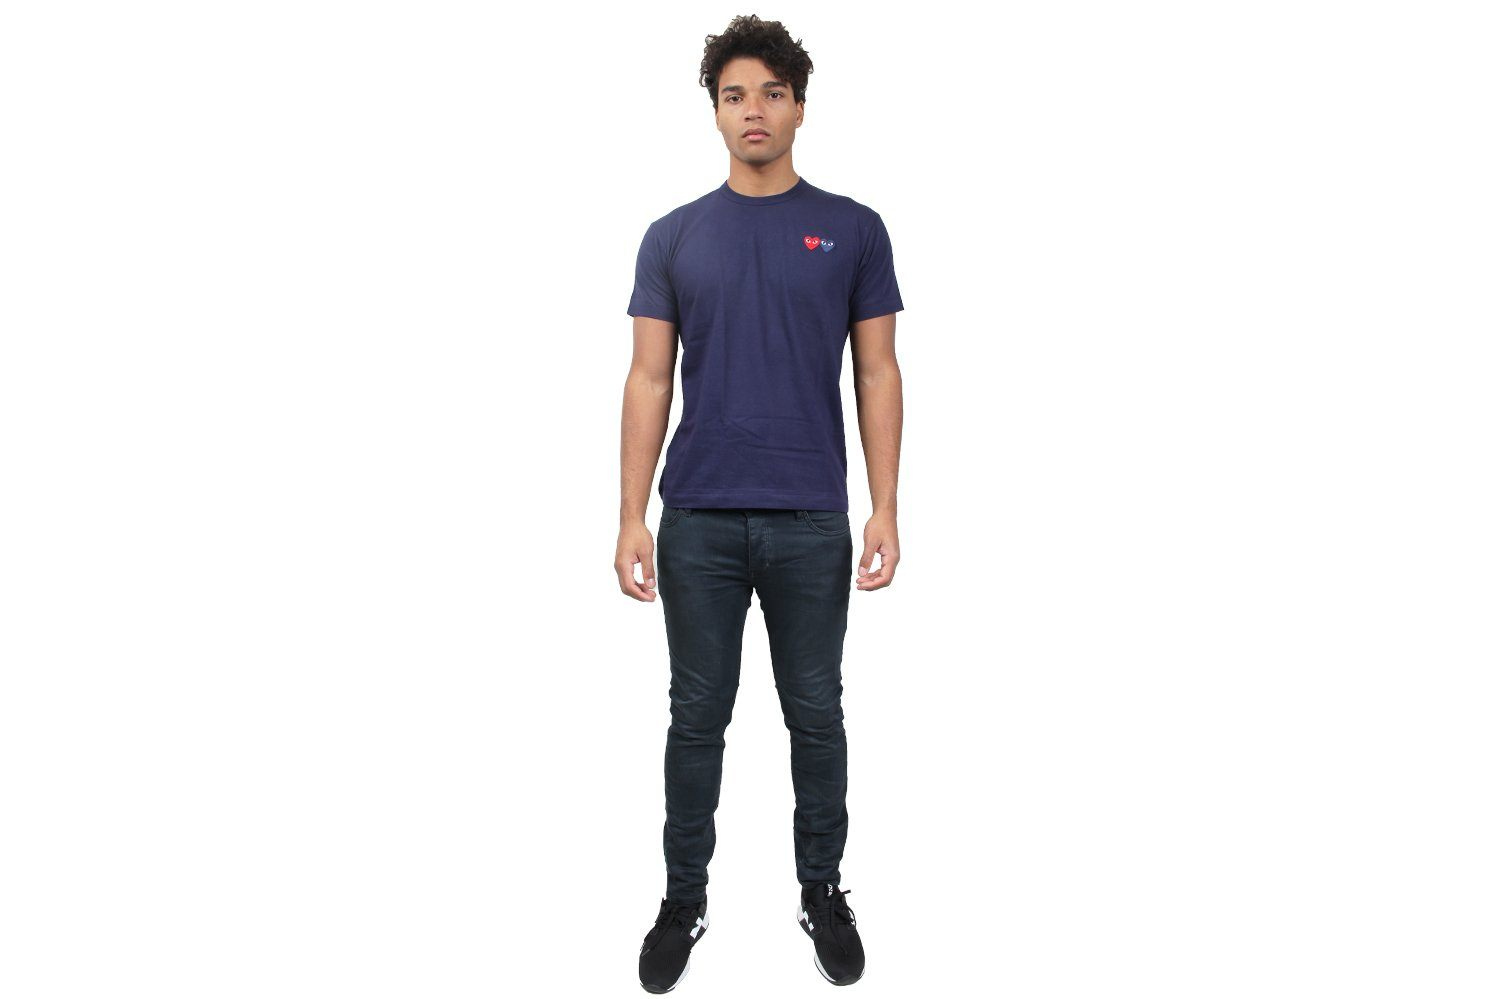 DARK NAVY DOUBLE HEART TEE MENS SOFTGOODS COMME DES GARCONS